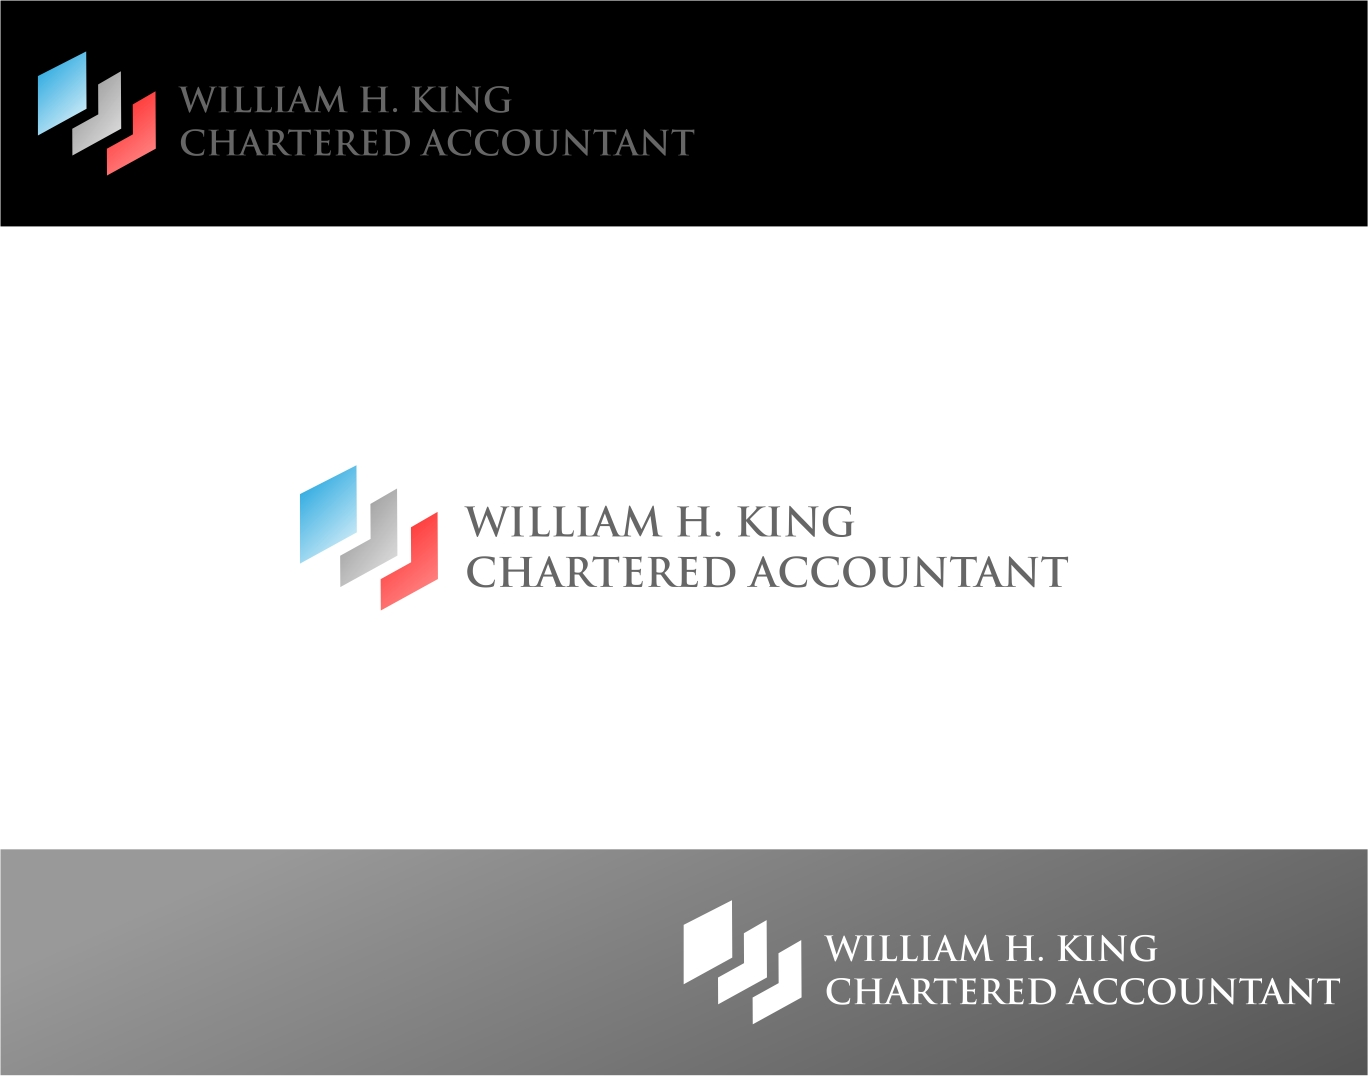 Logo Design by haidu - Entry No. 5 in the Logo Design Contest New Logo Design for William H. King, Chartered Accountant.